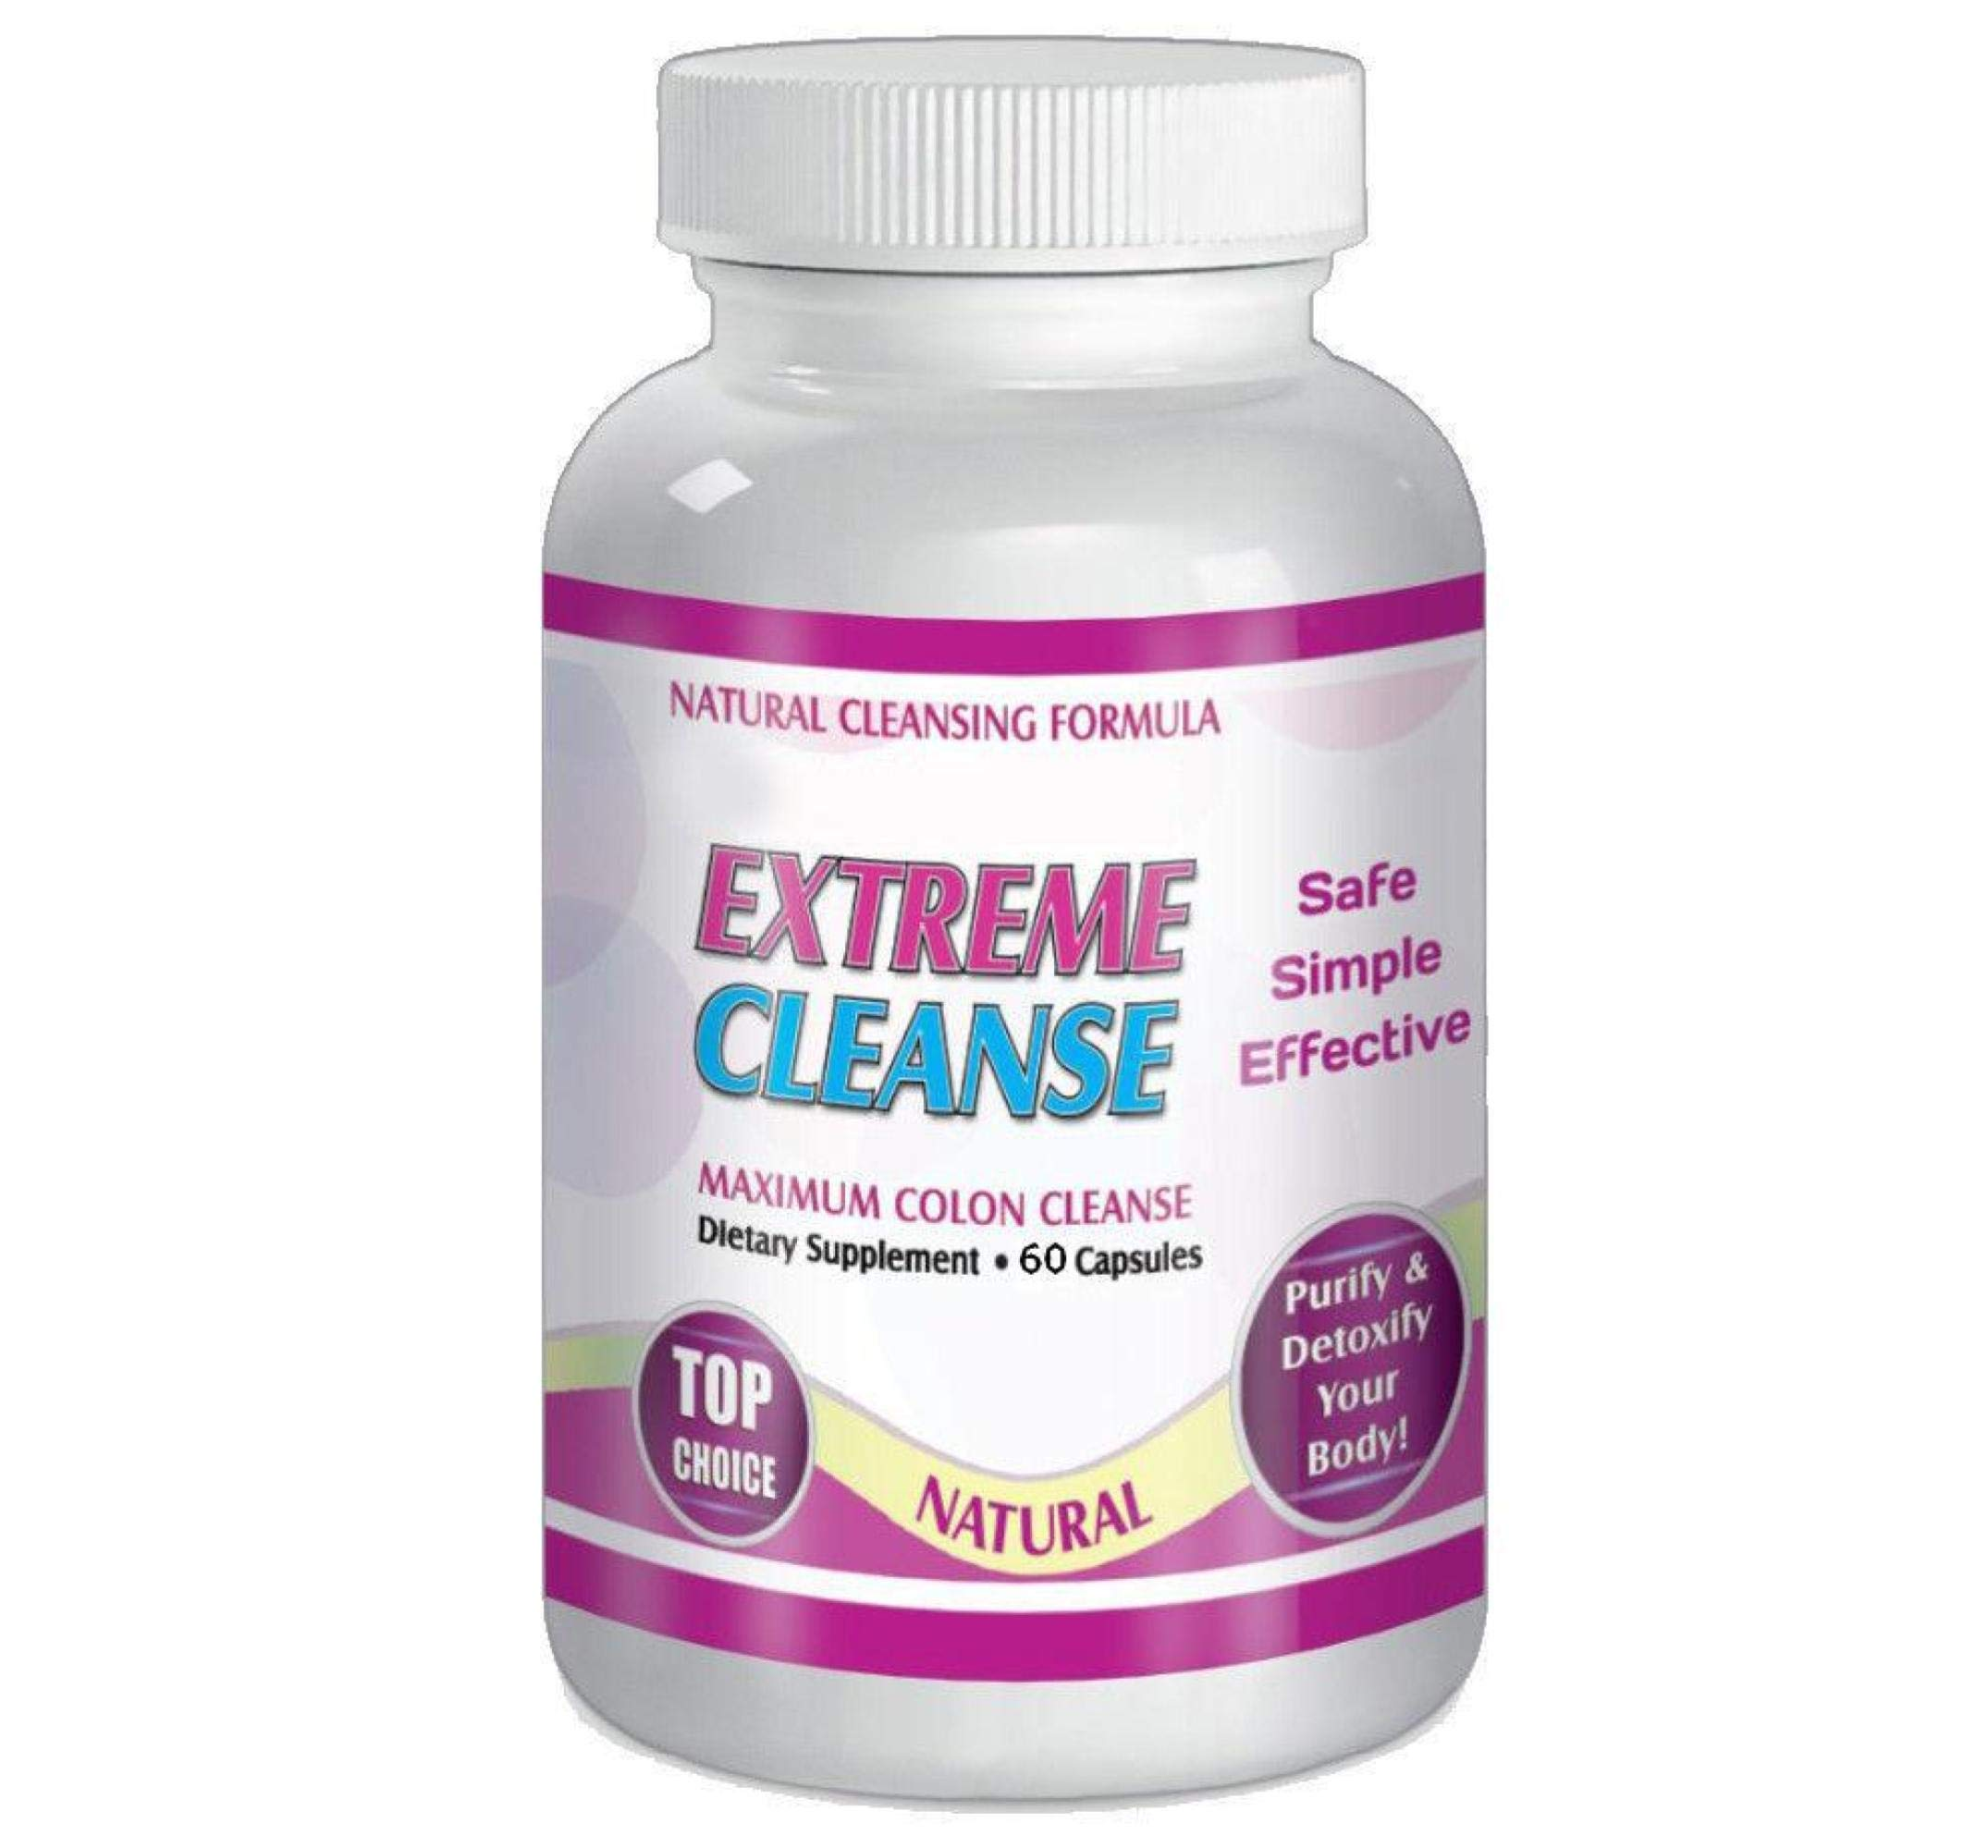 Extreme Cleanse Maximum Colon Detox Control 30 day supply Weight Loss Diet Supplements By Slimax